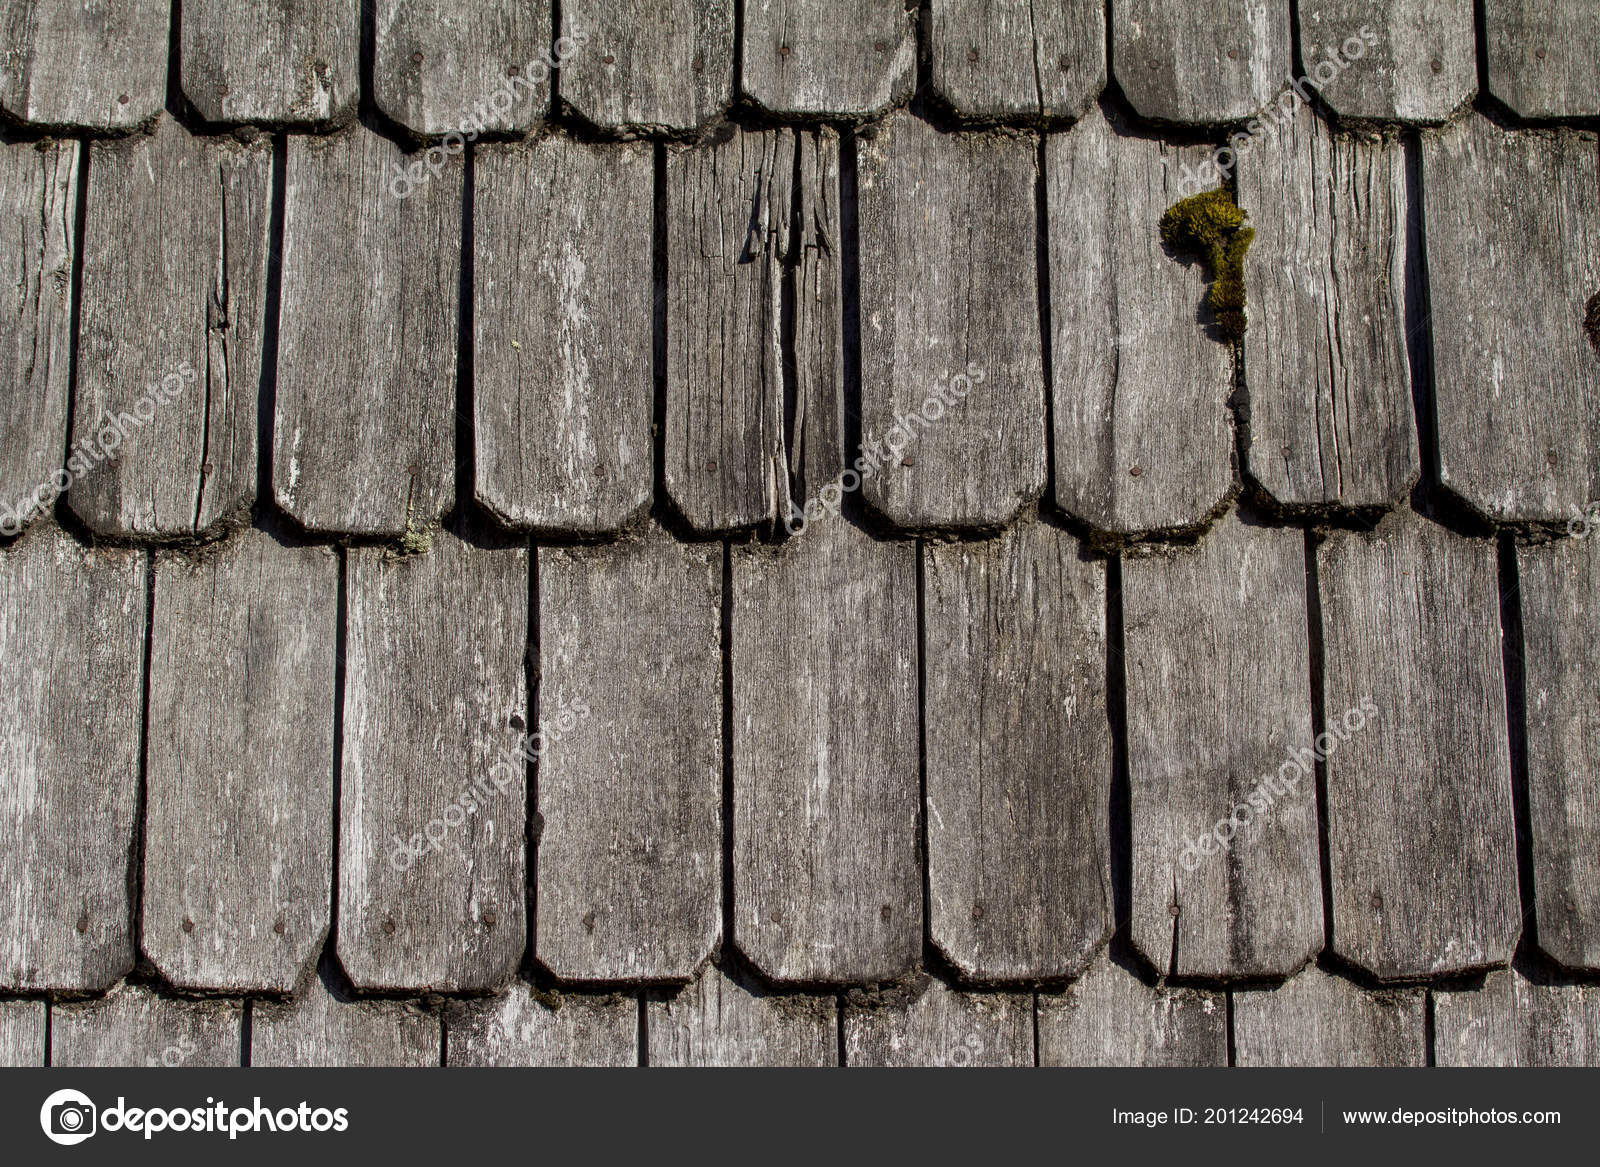 Wood roof - old traditional method for roofing - Cedar roof shingles and  shakes are renowned for their insulation qualities, dimensional stability  and